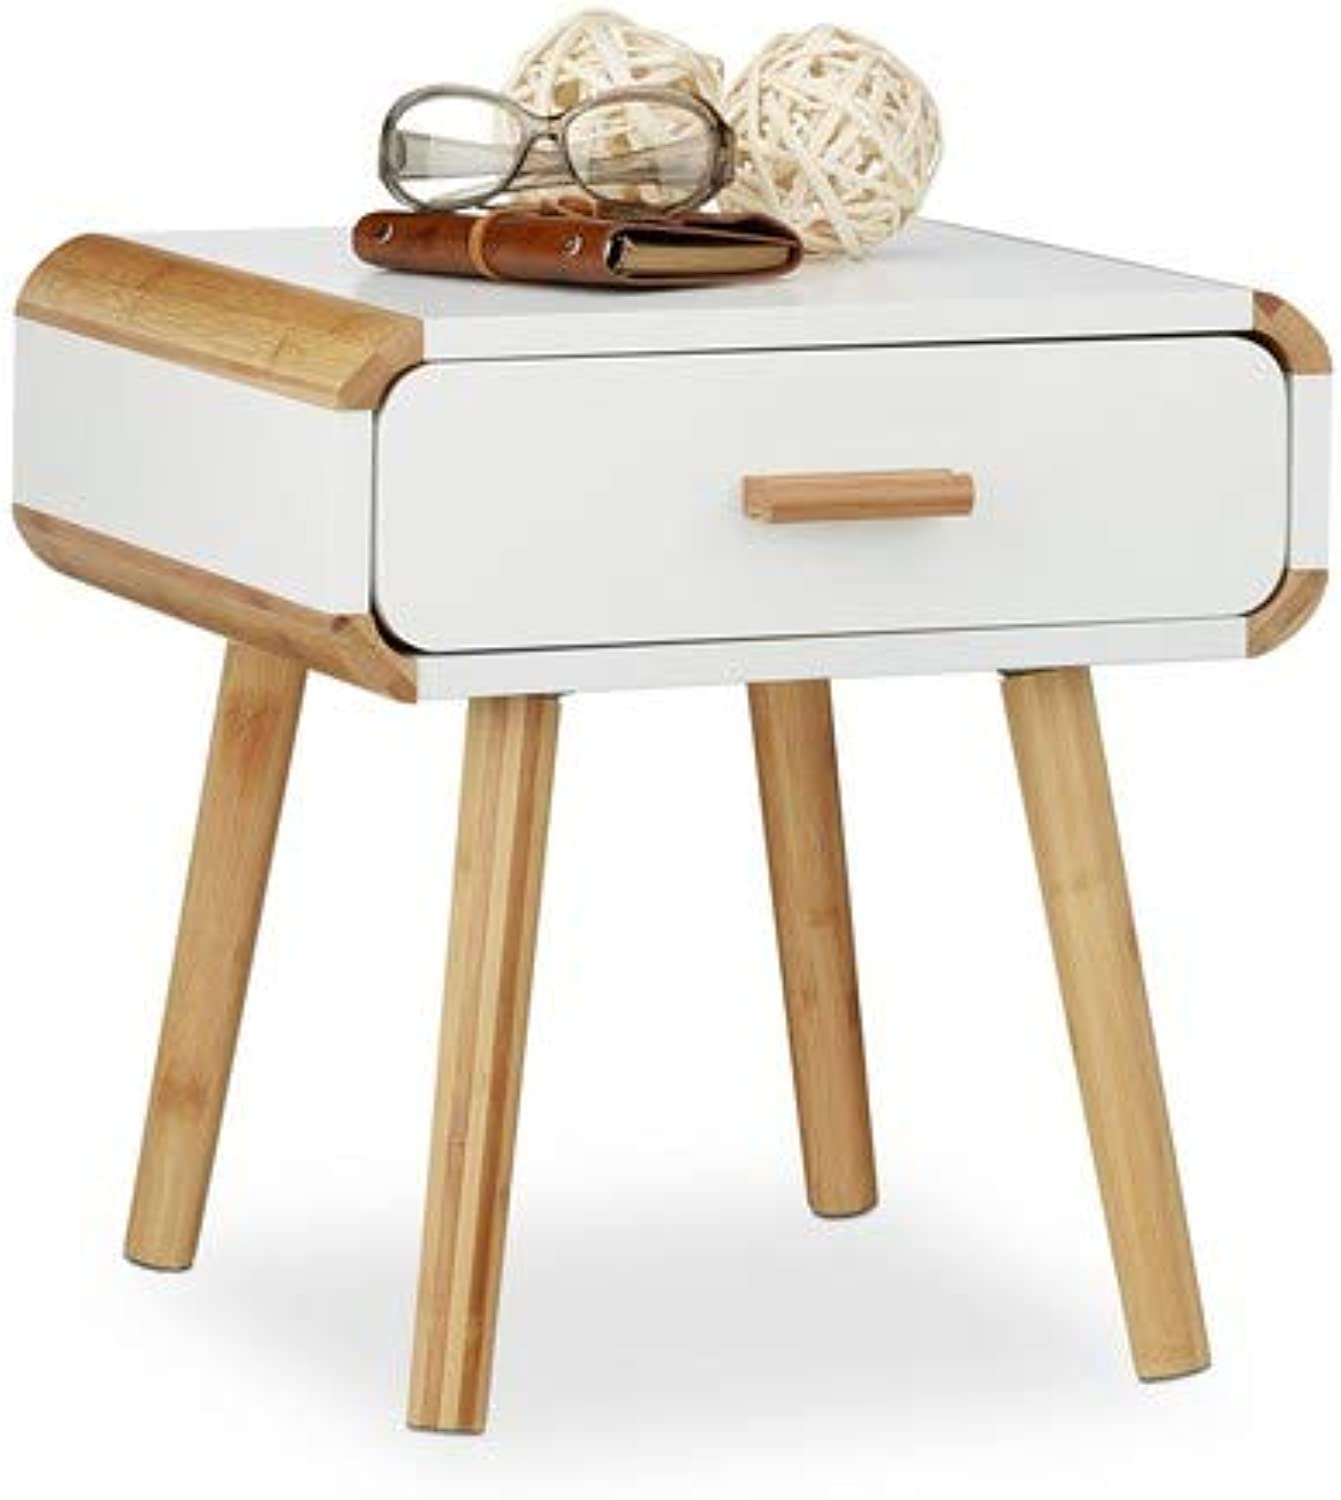 Relaxdays Bedside Table with 1 Drawer, Wooden Nightstand, Compact Bedroom Dresser, HxWxD  41 x 40 x 40 cm, White